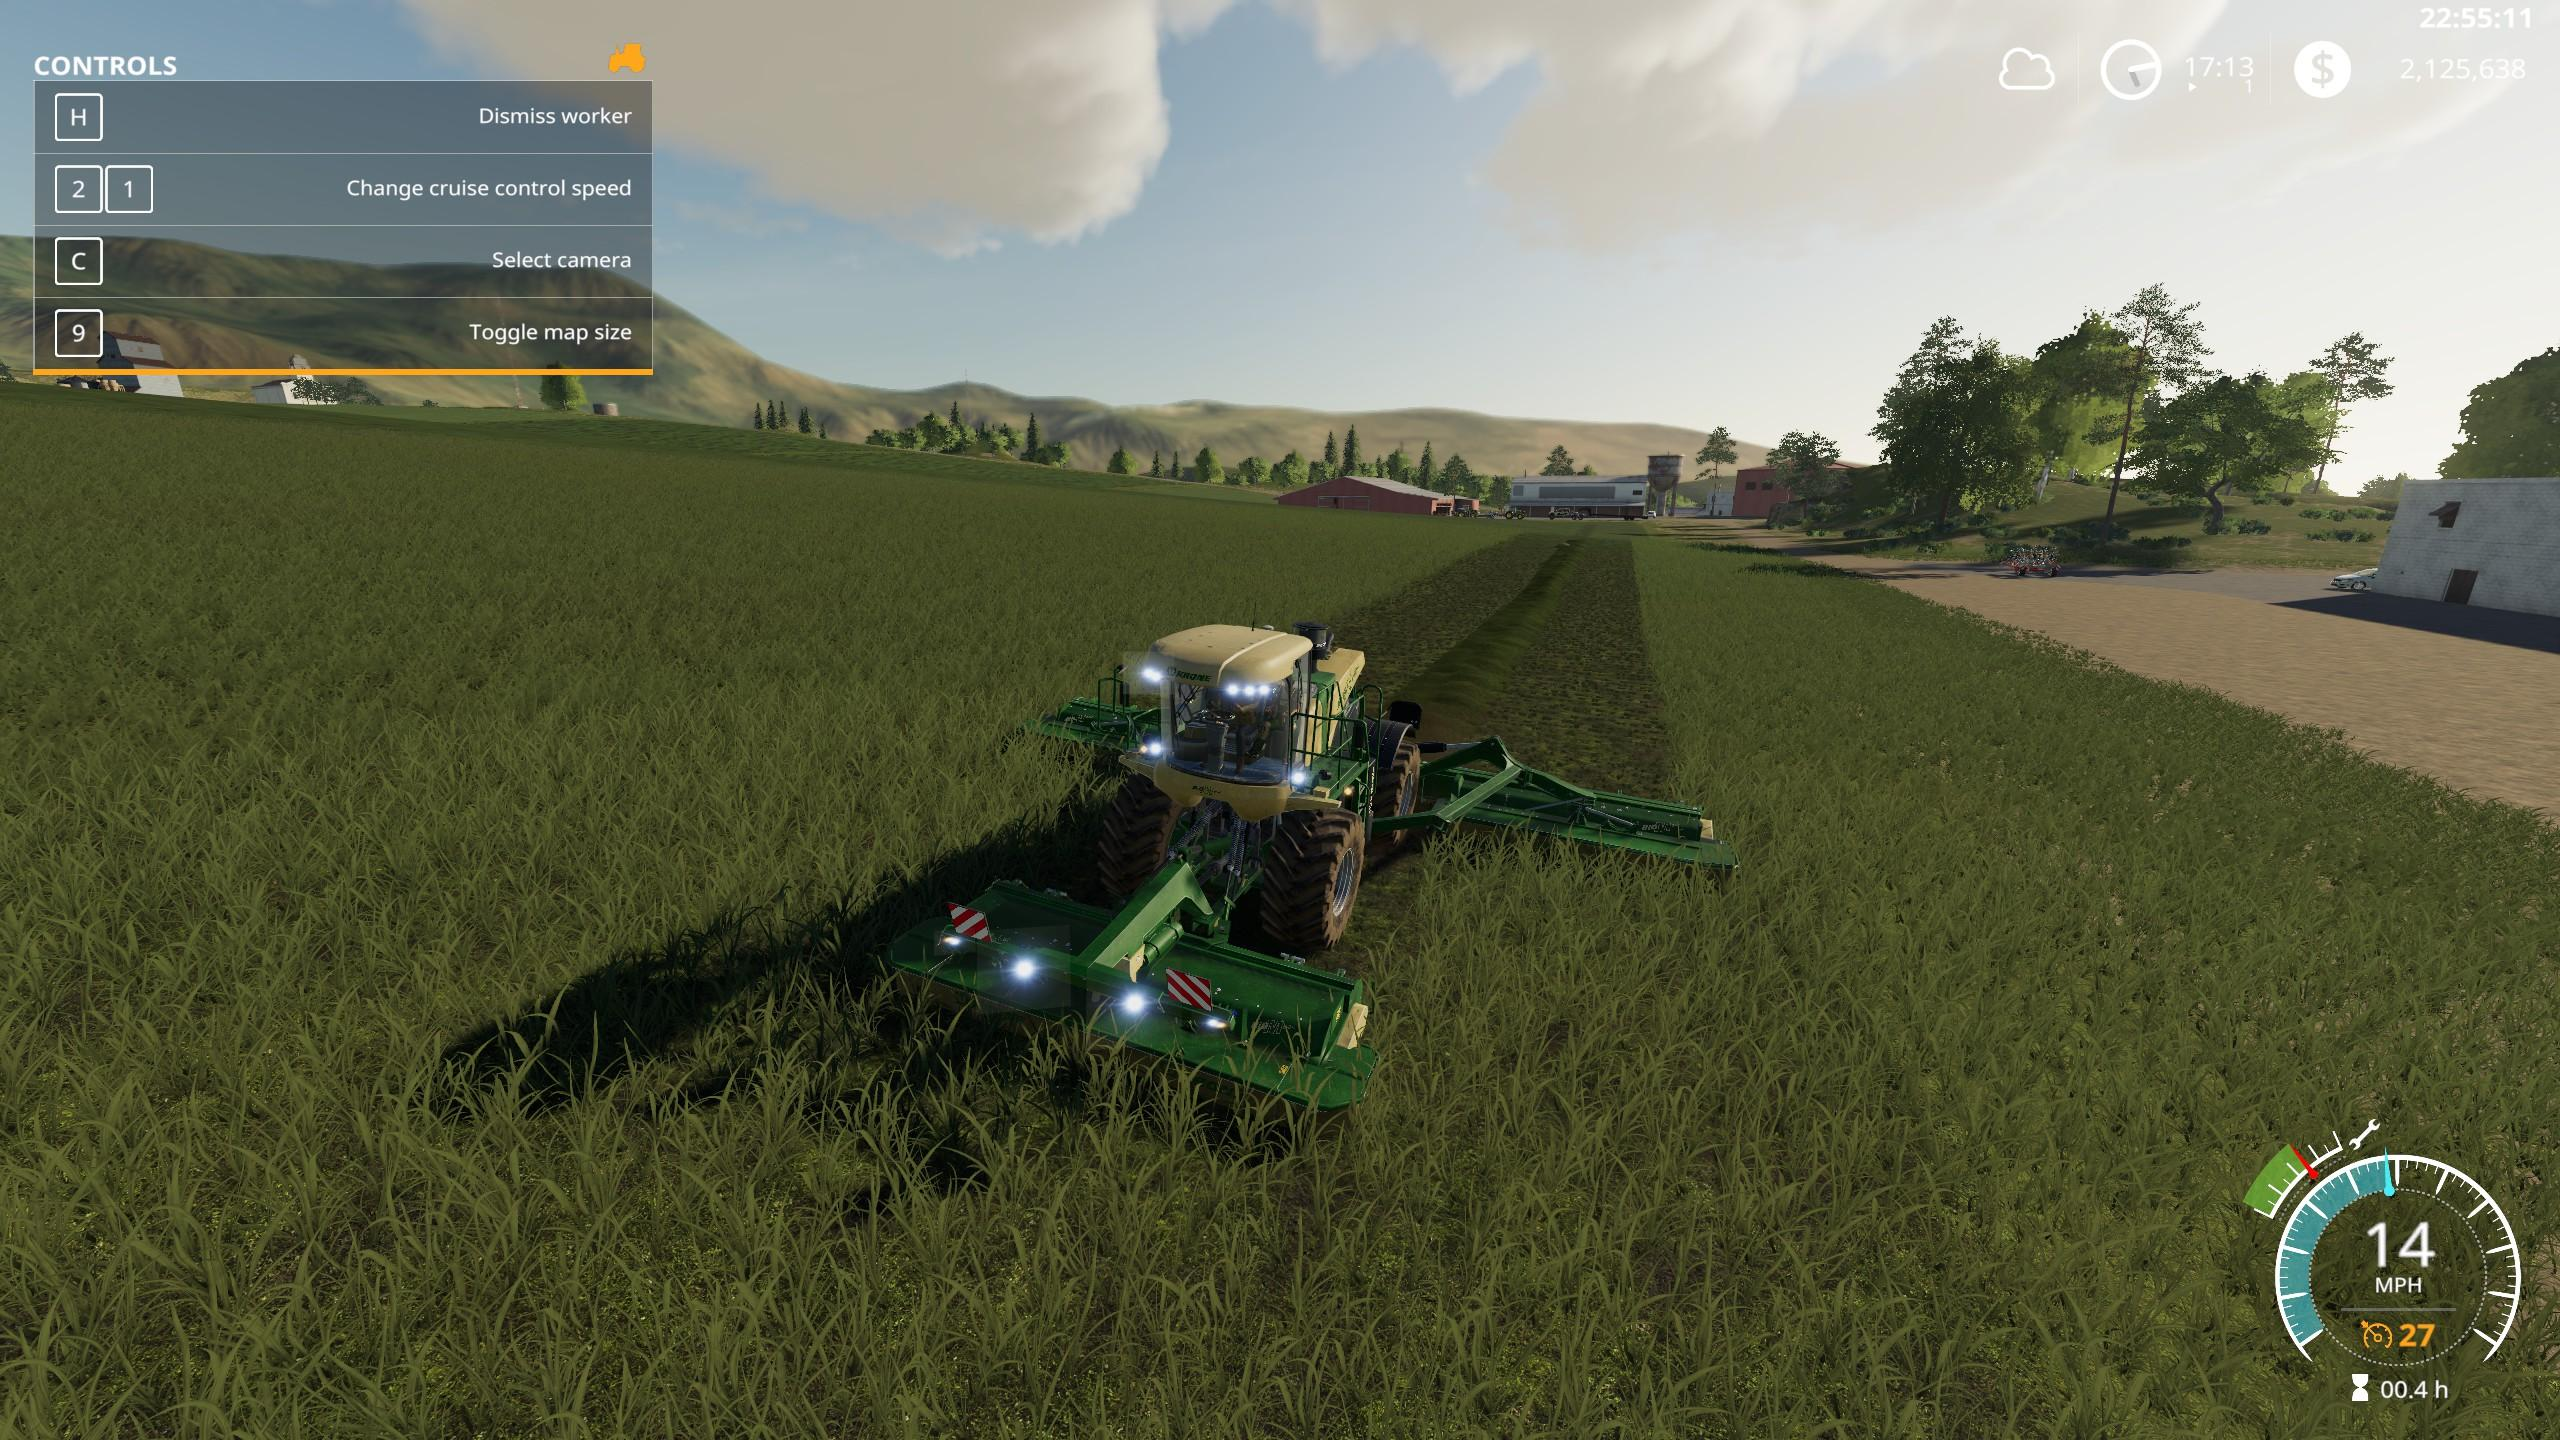 KRONE BIG M 500 - Farming Simulator 19 Mods - Ai Cave